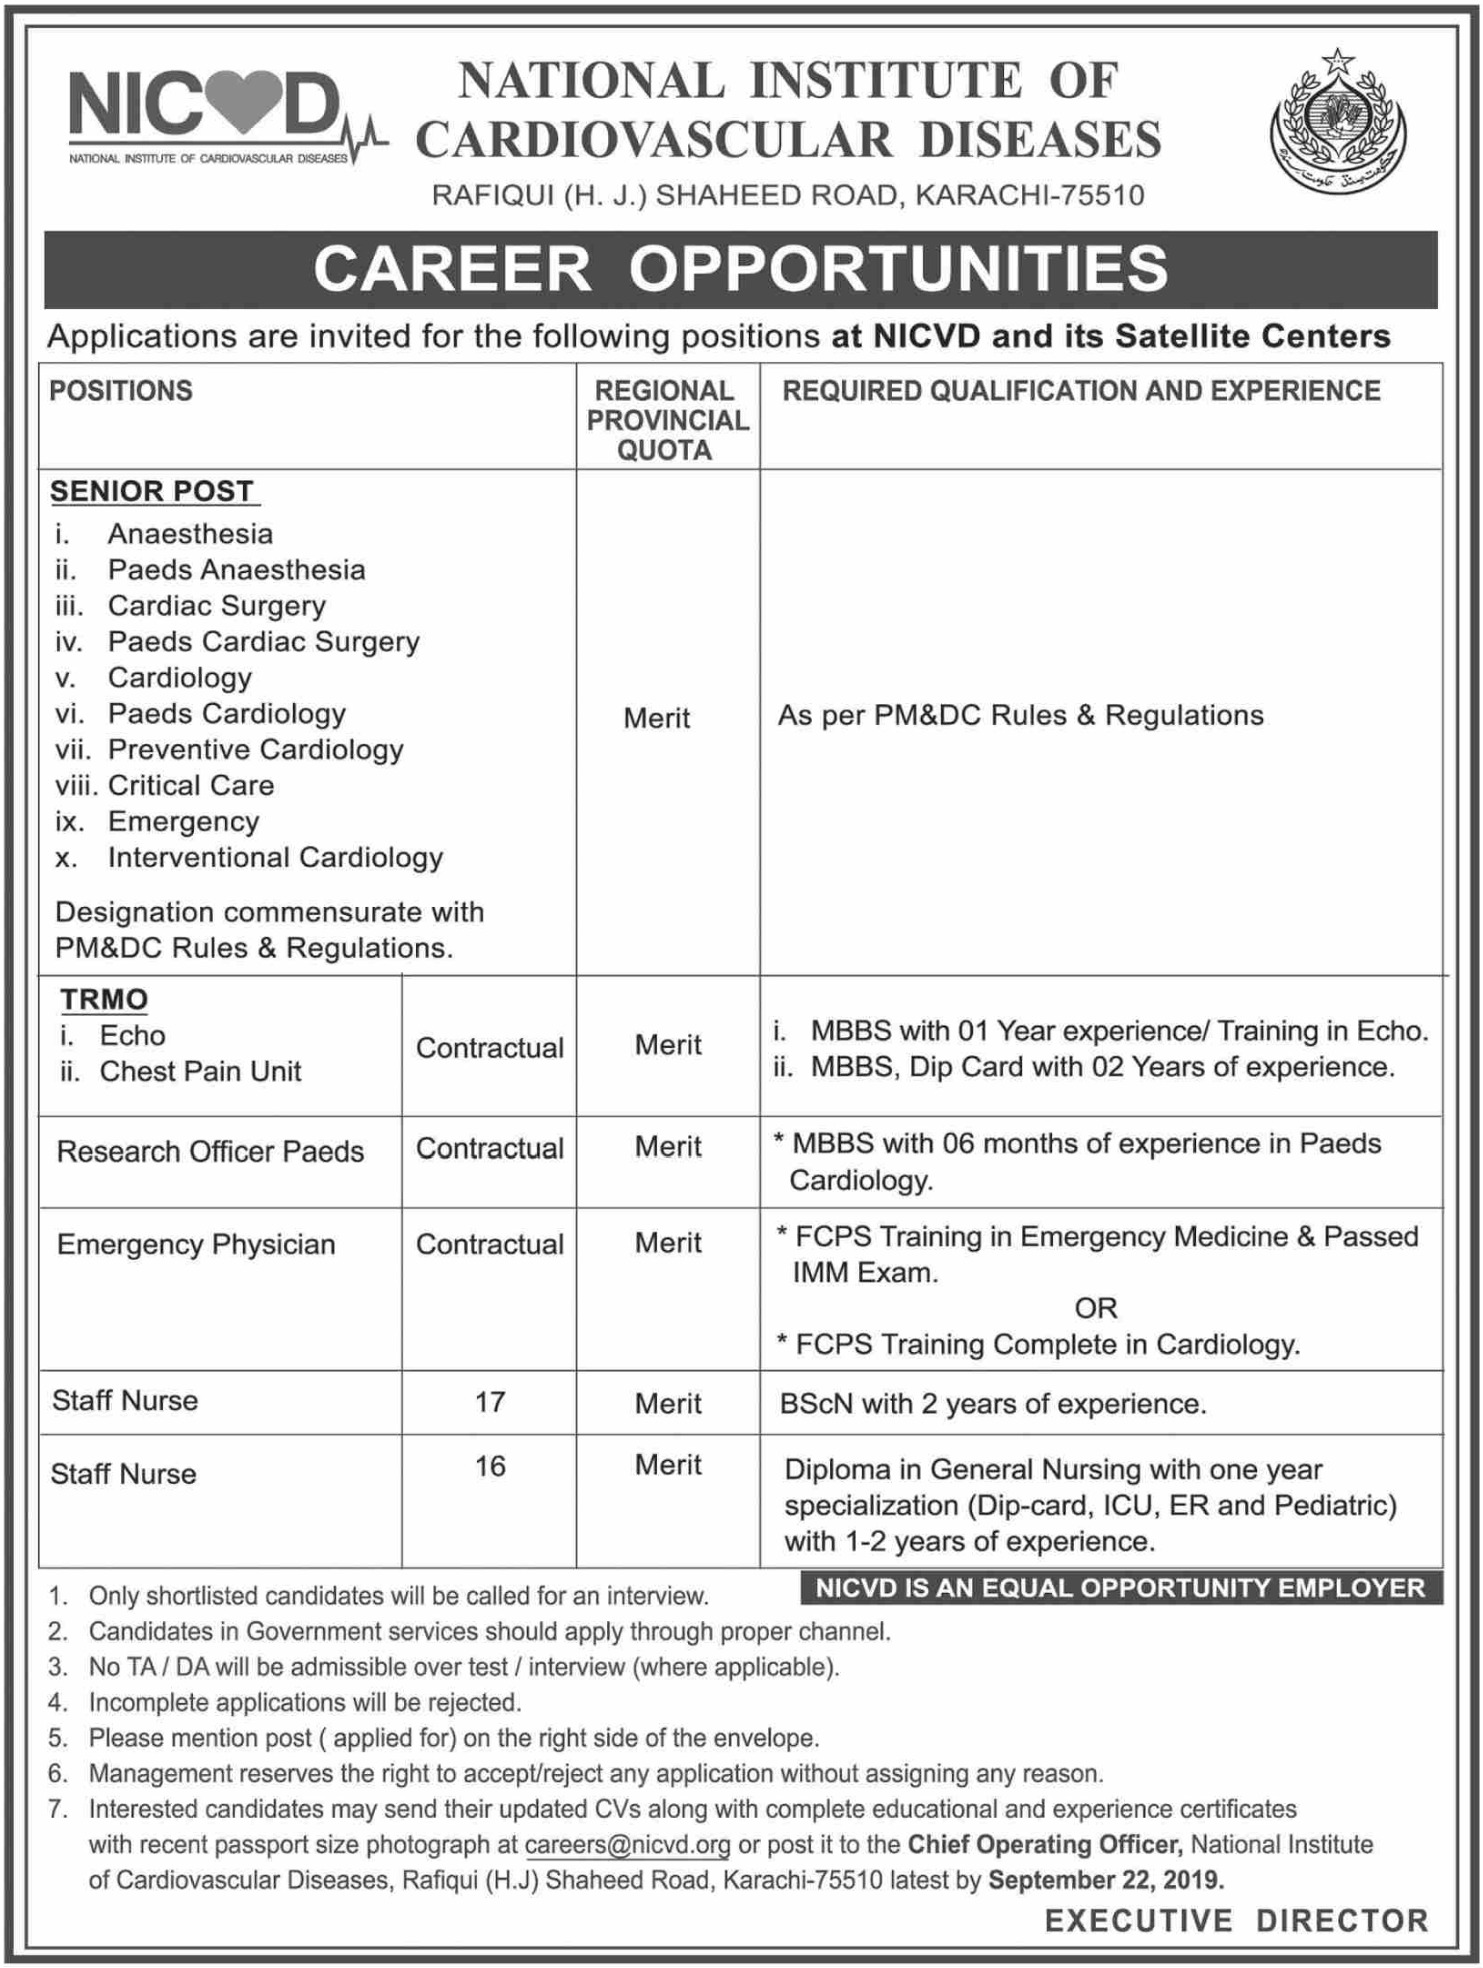 National Institute of Cardiovascular Diseases NICVD Karachi Jobs 2019